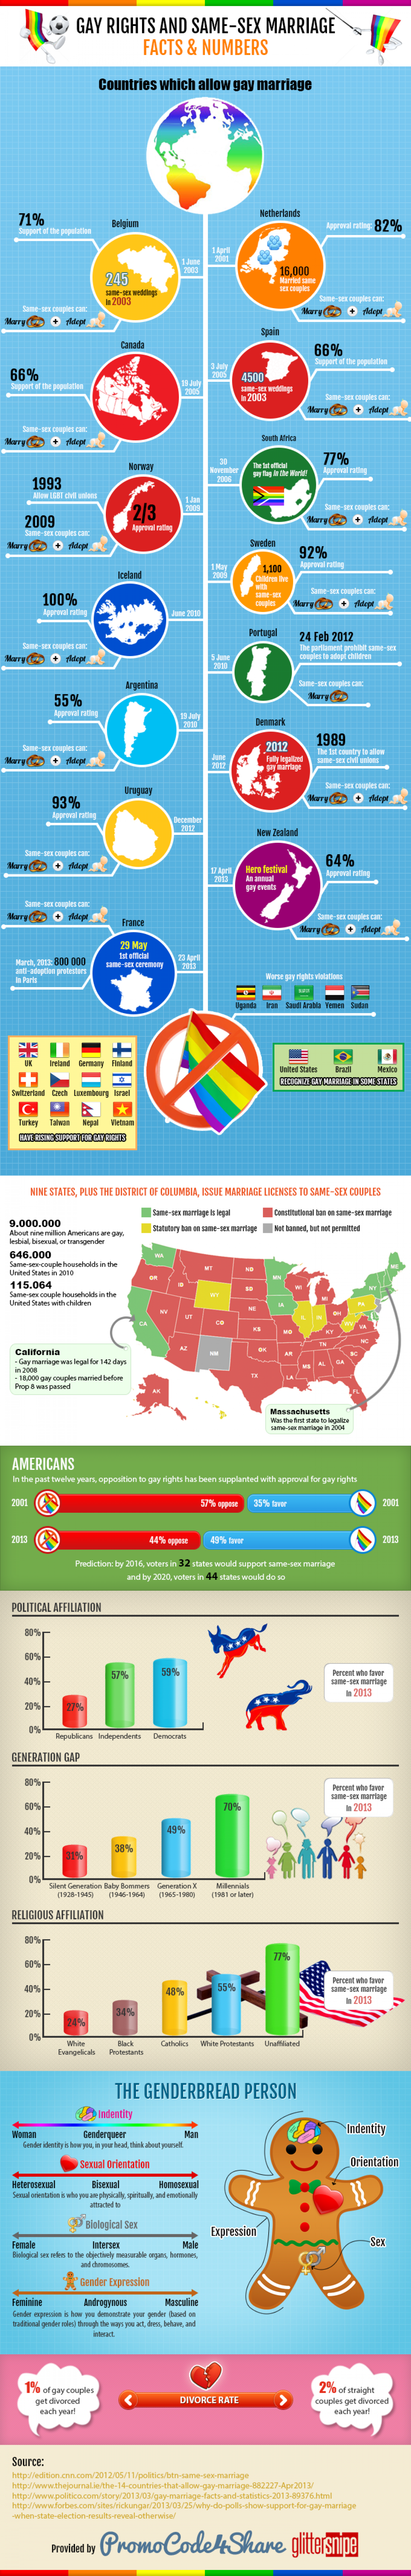 Gay Marriage Facts and Numbers Infographic